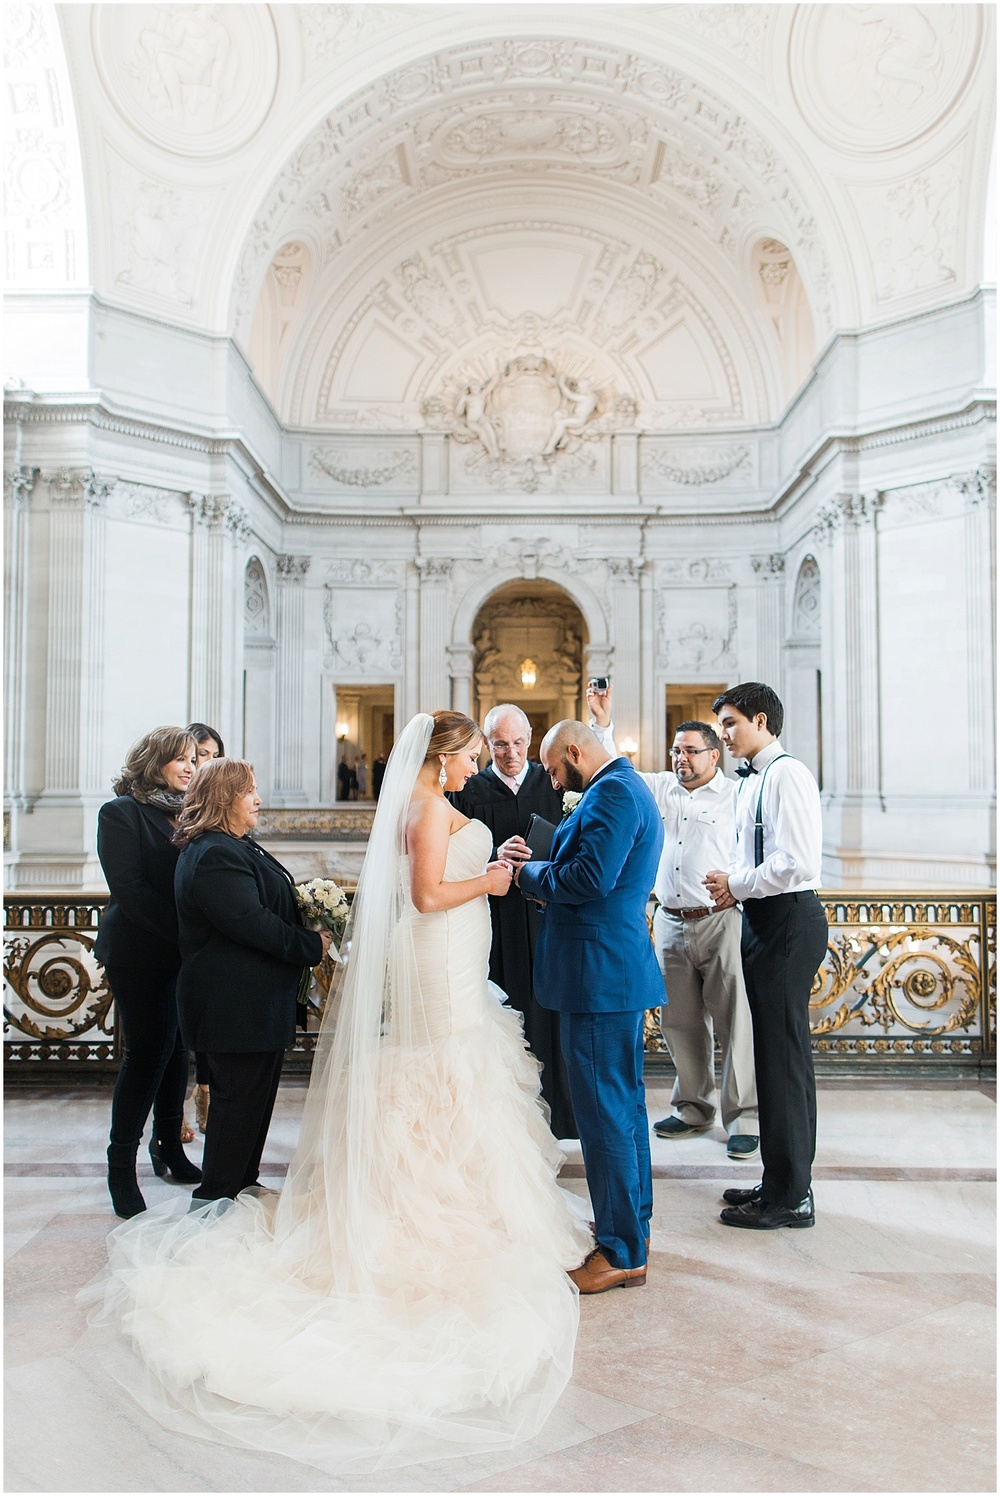 Blueberryphotography.com | San Francisco City Hall Elopement | SF City Hall Wedding | Mayors Balcony